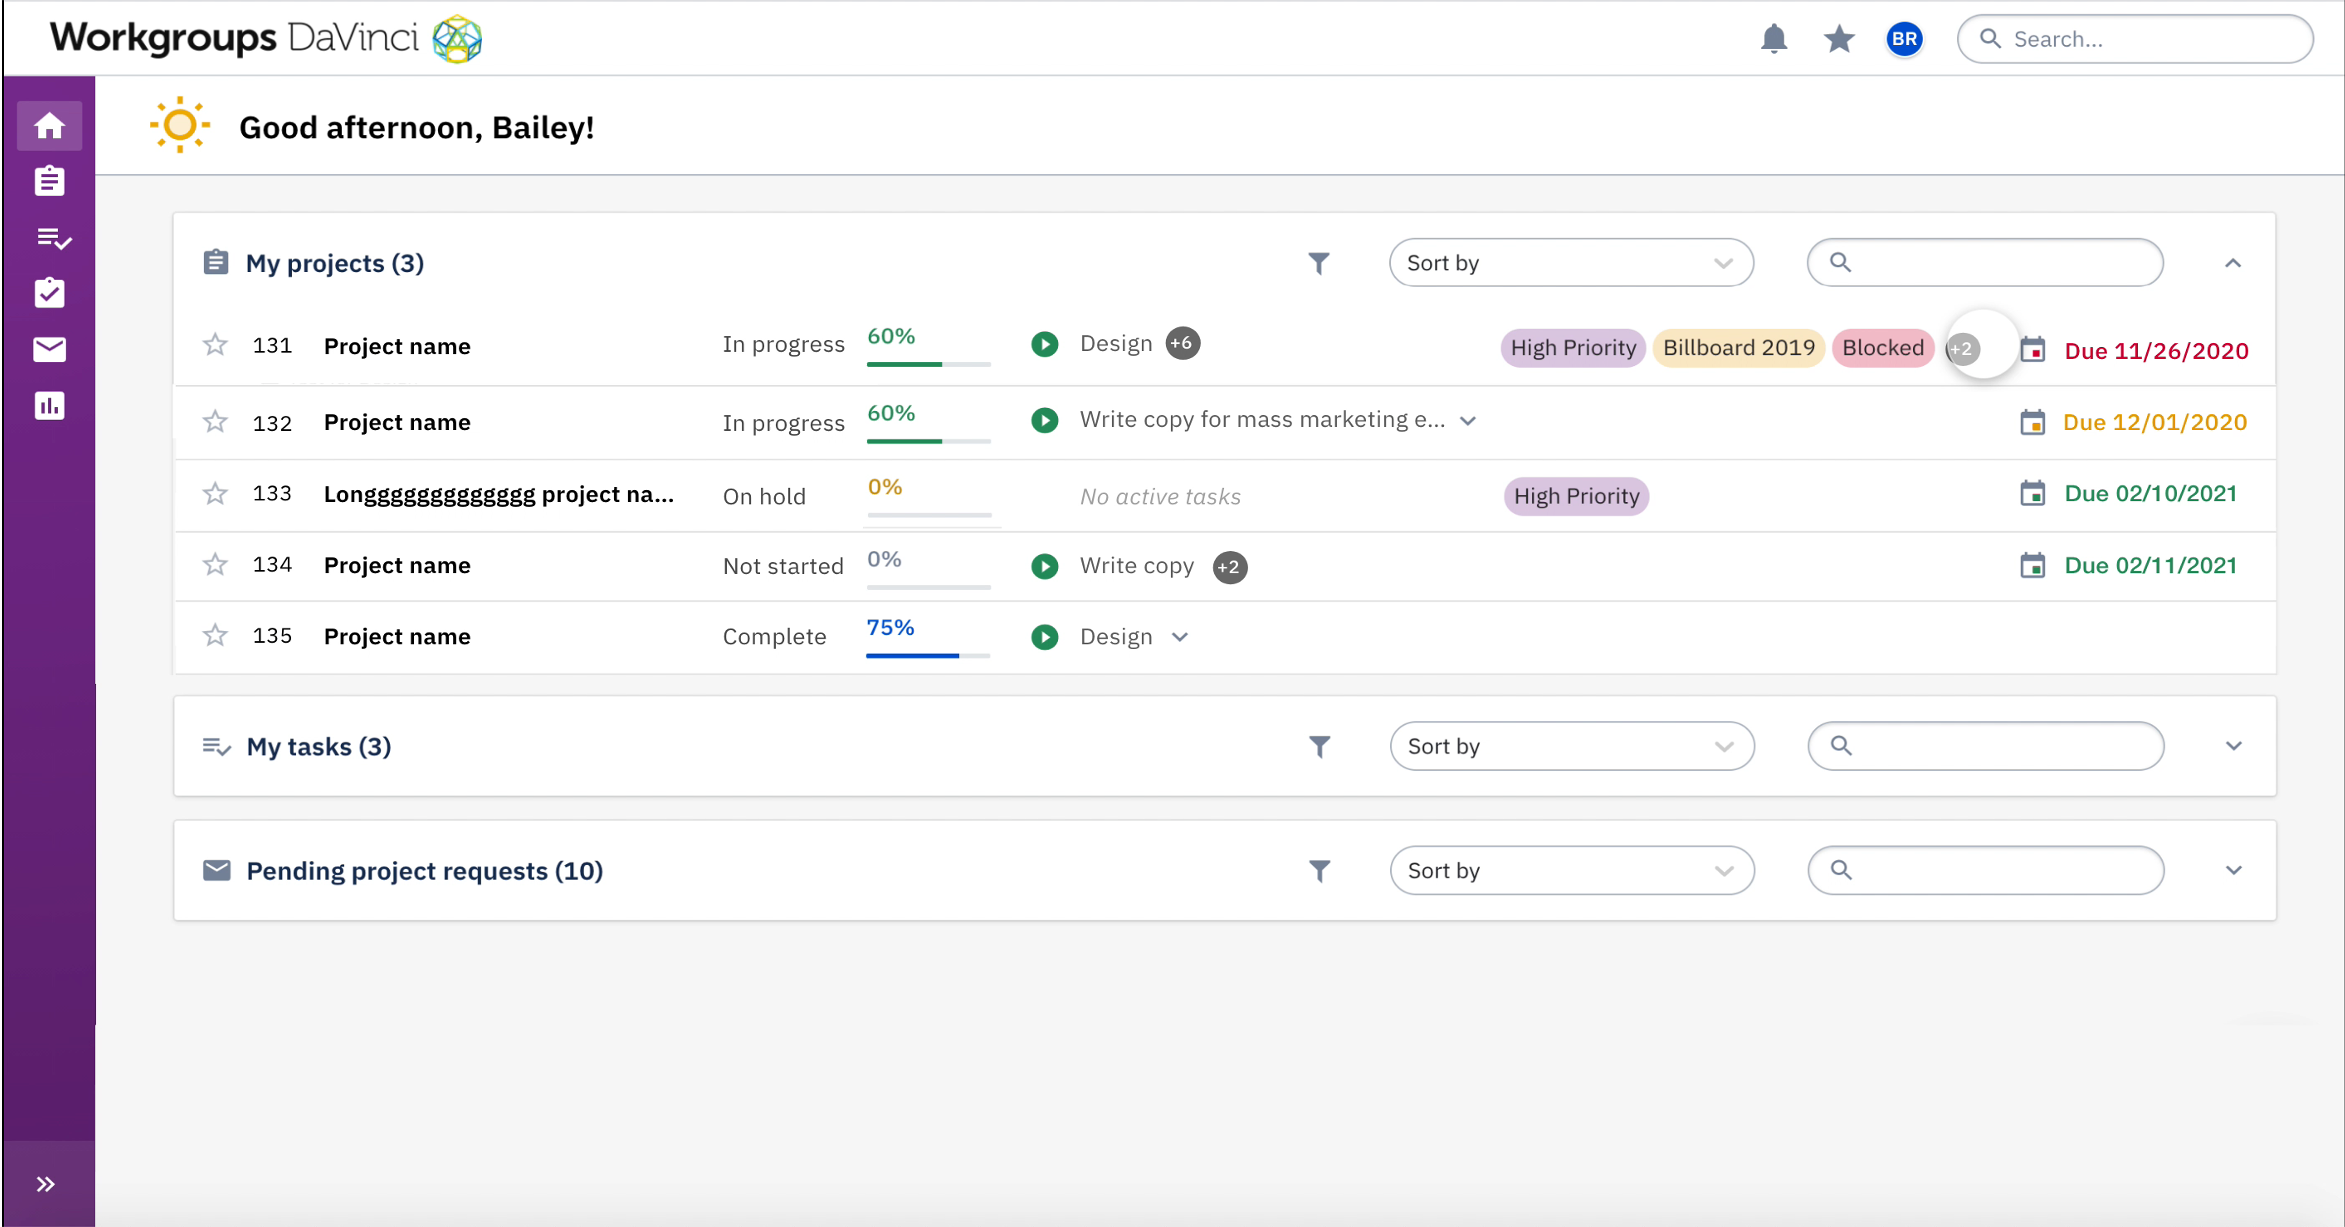 Stay organized and keep track of your team's work in a single view